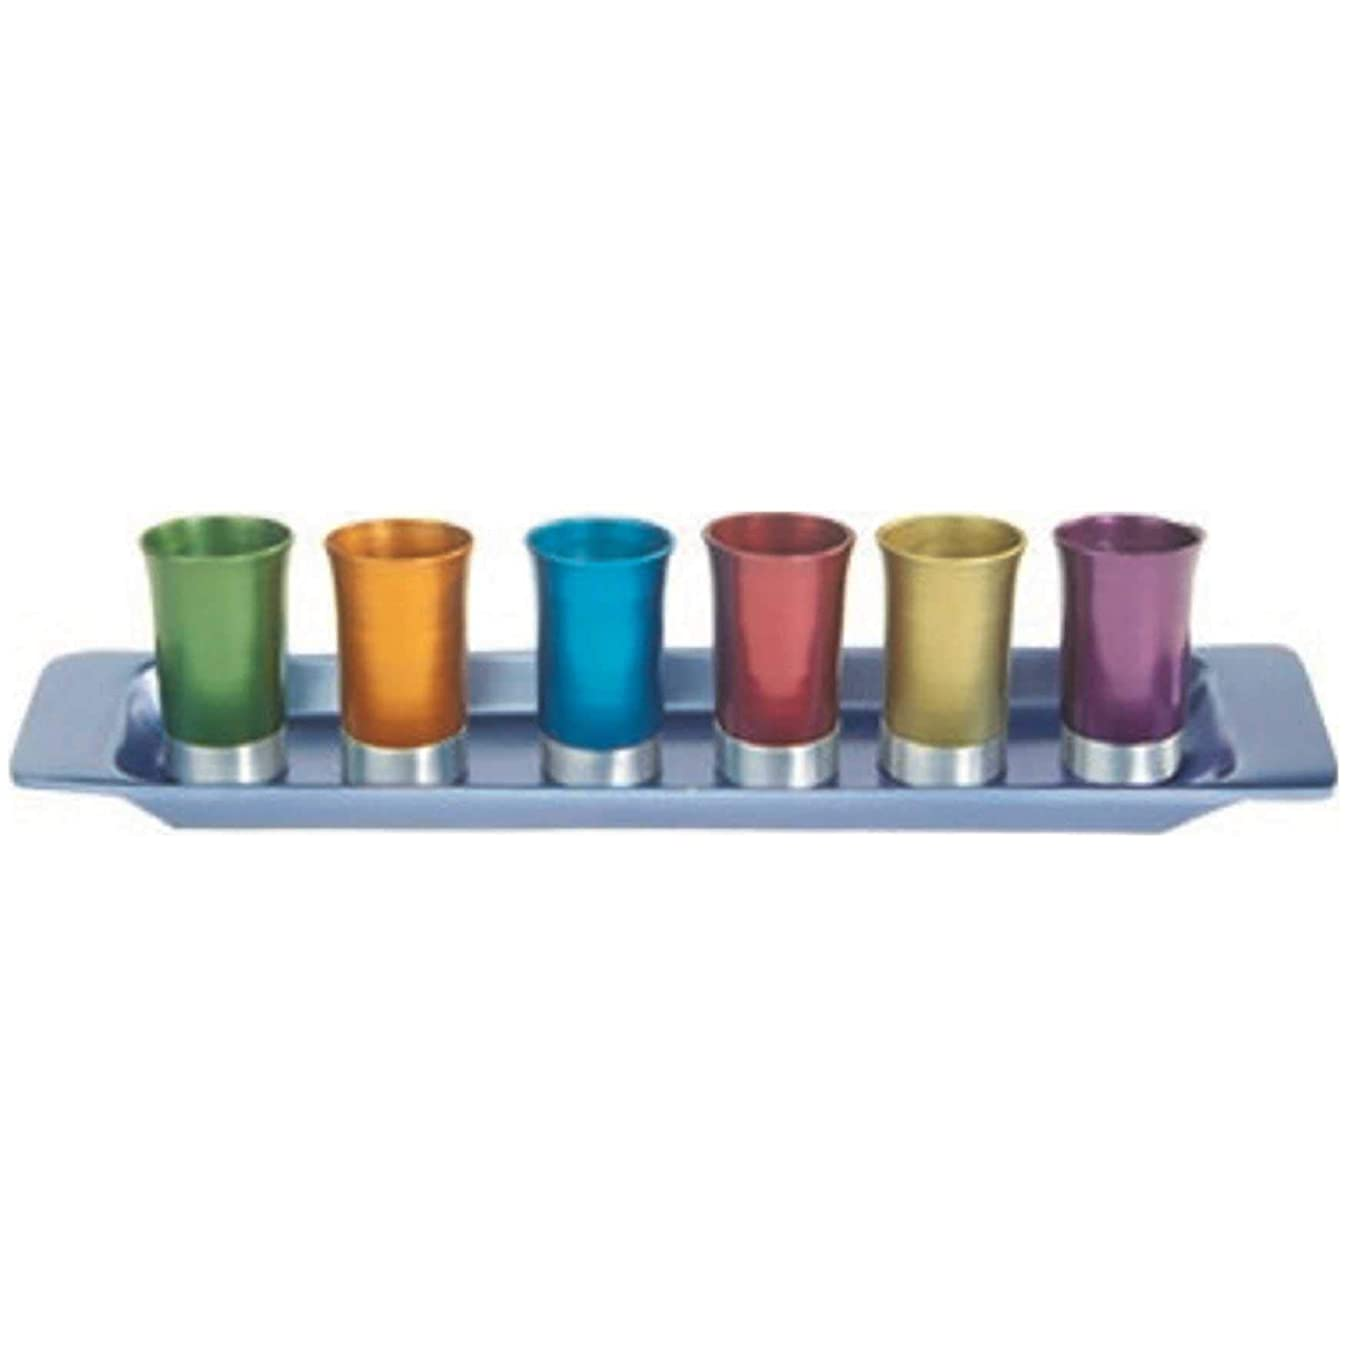 Yair Emanual Set of 6 Small Kiddush Goblets Cups with Tray Aluminum  Multicolor  Judaica (GS-6A)